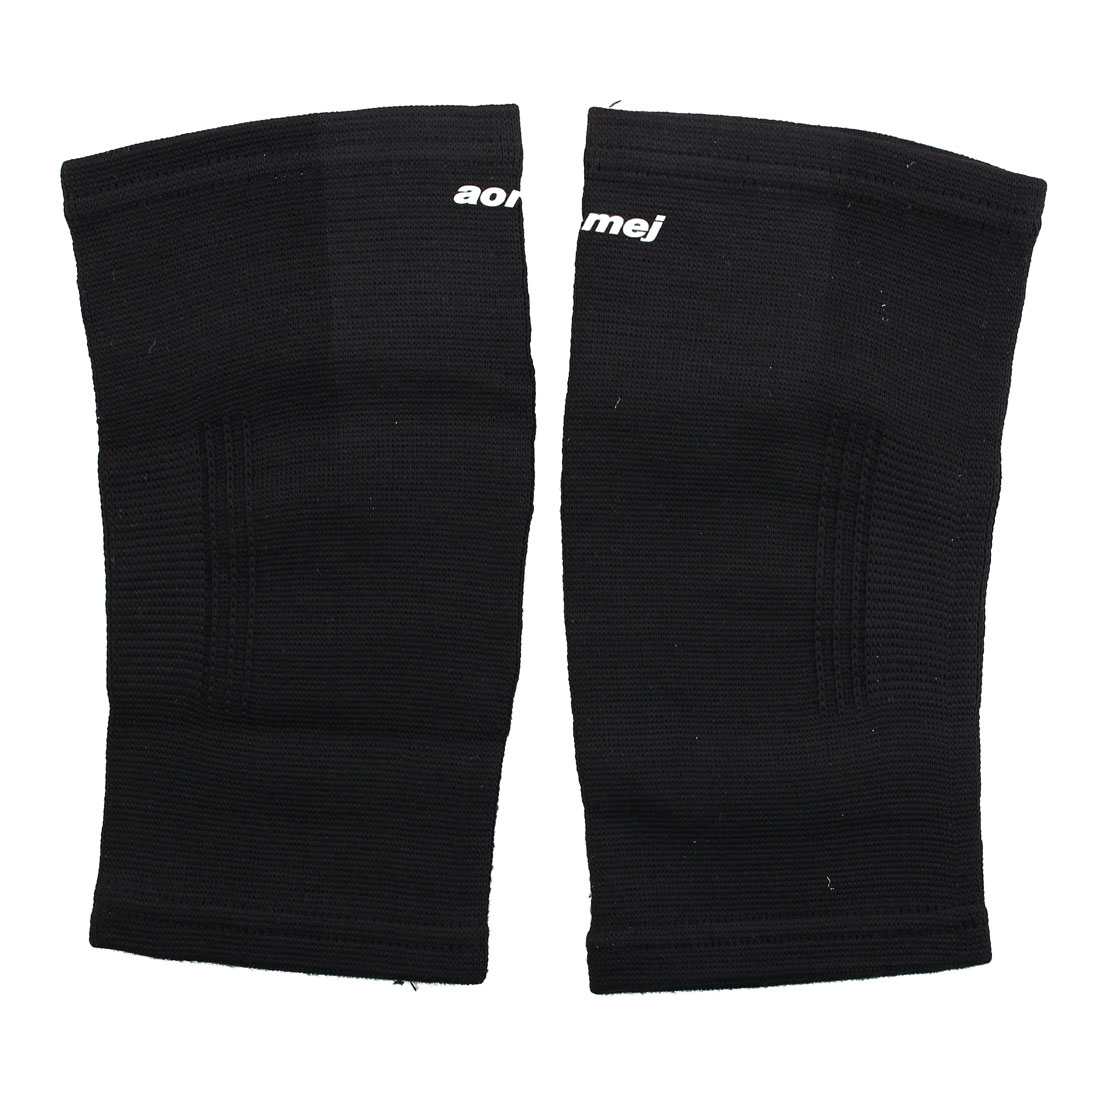 Sports Cotton Spandex Elastic Elbow Compression Surpprot Protector Black 2 Pcs